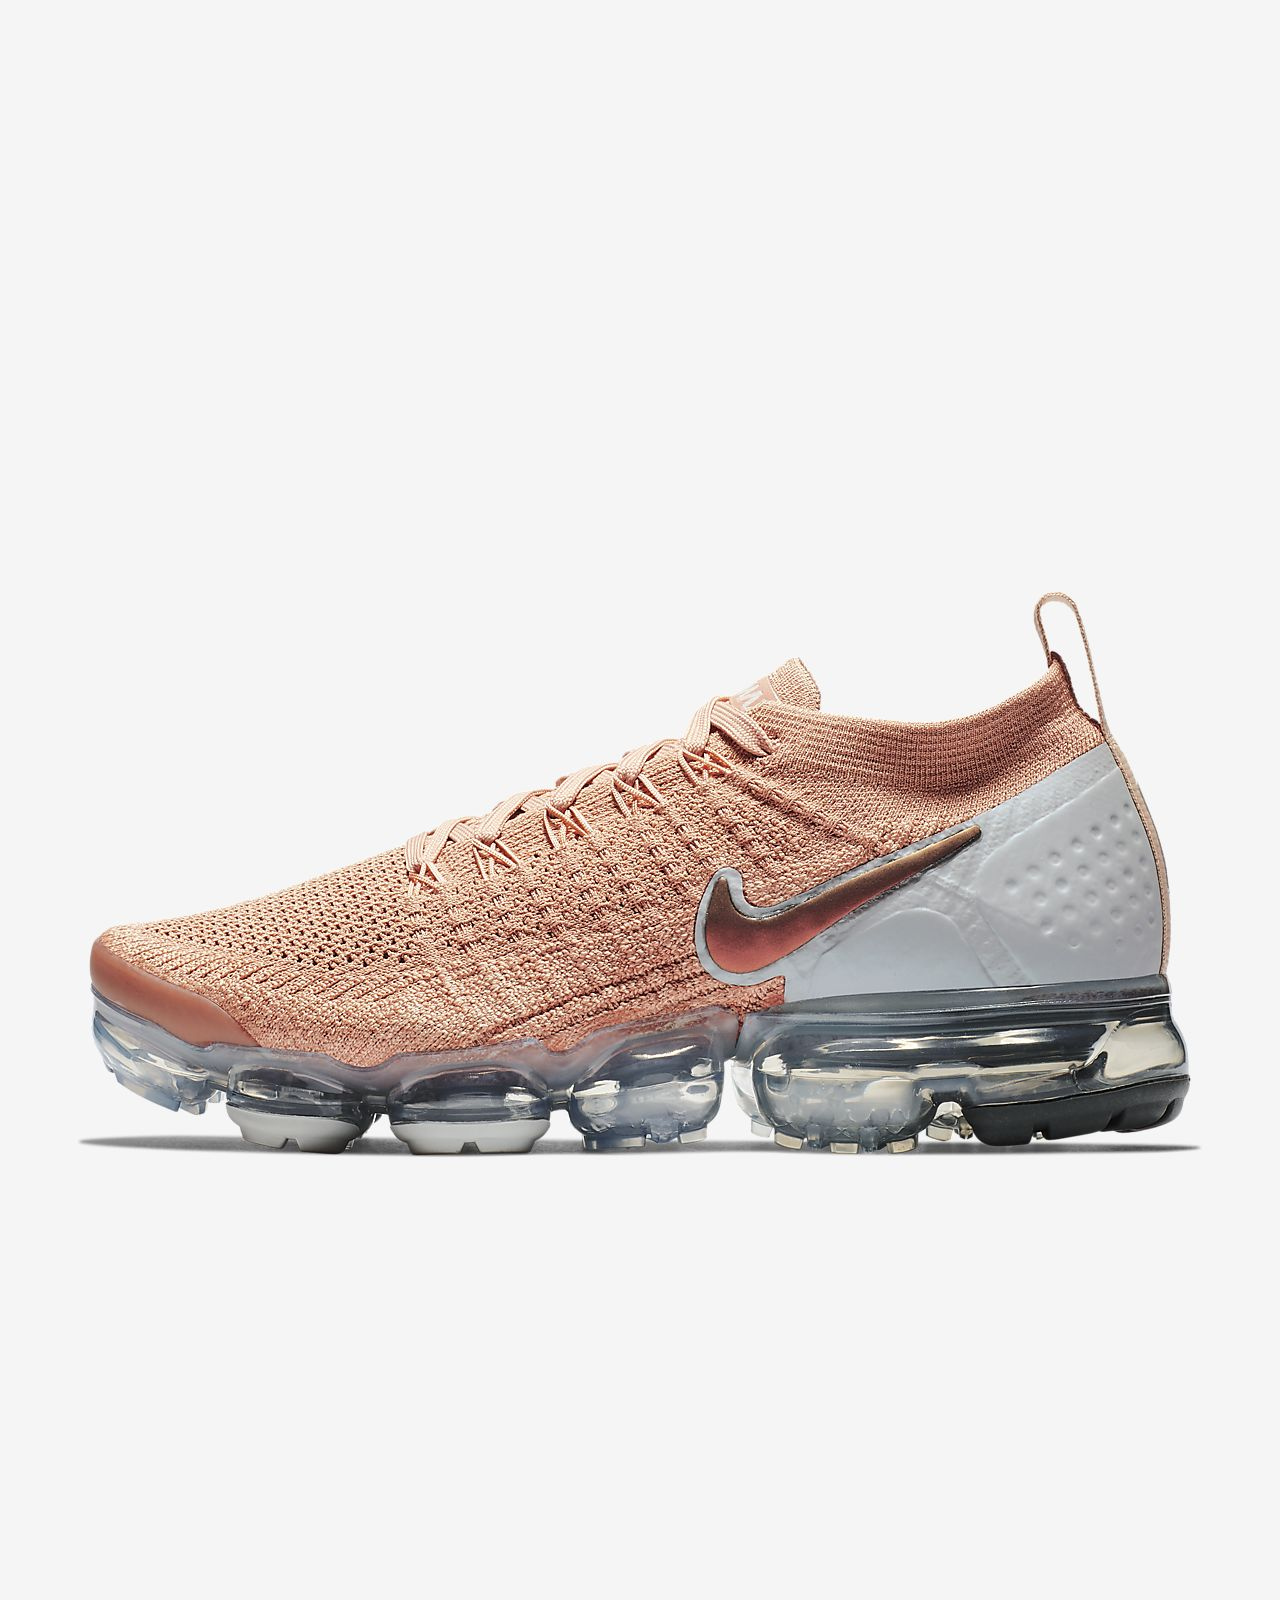 separation shoes f9410 77b38 ... Chaussure Nike Air VaporMax Flyknit 2 pour Femme